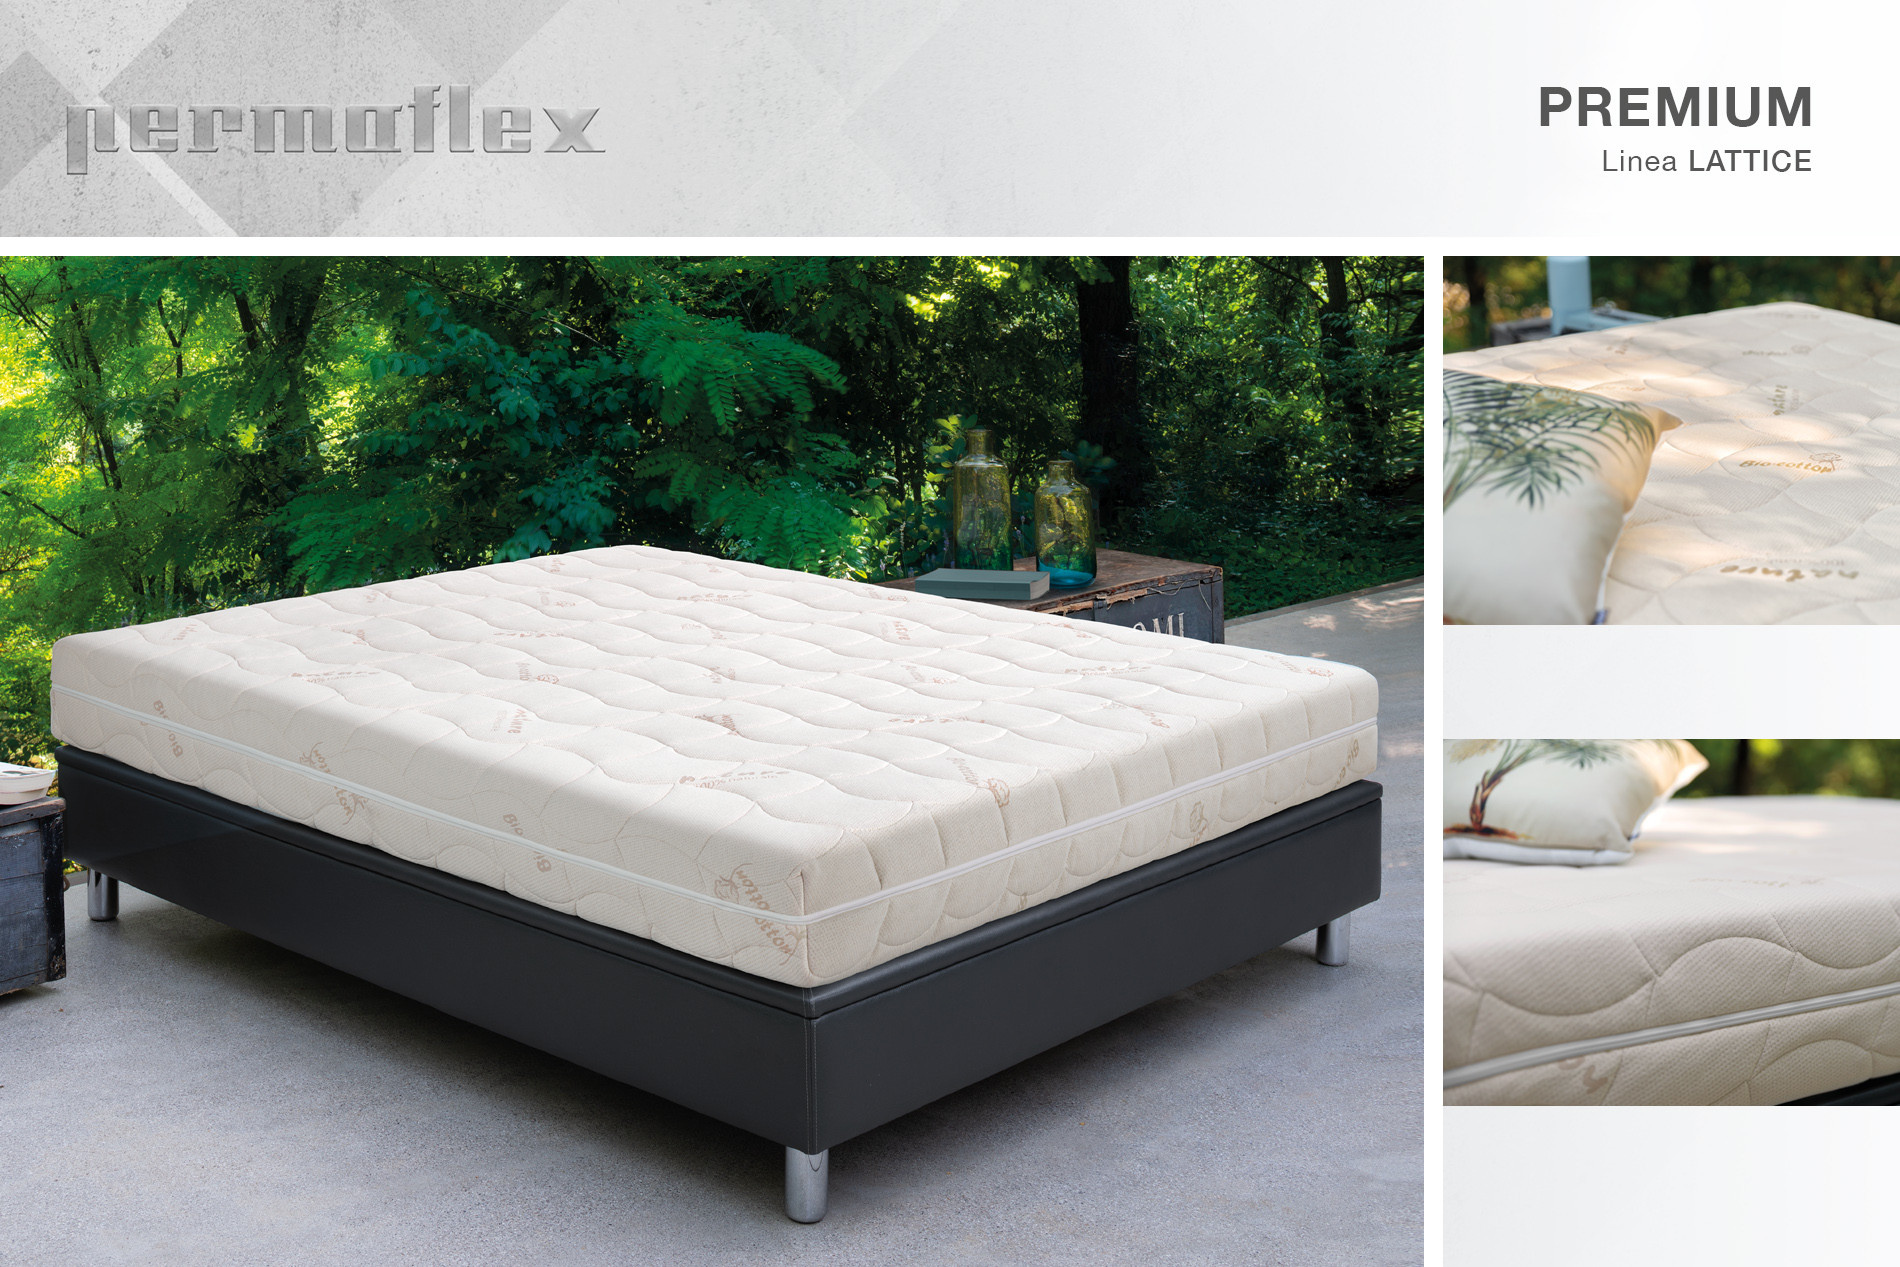 Materassi In Lattice Naturale Permaflex.Linea Lattice Premium Permaflex